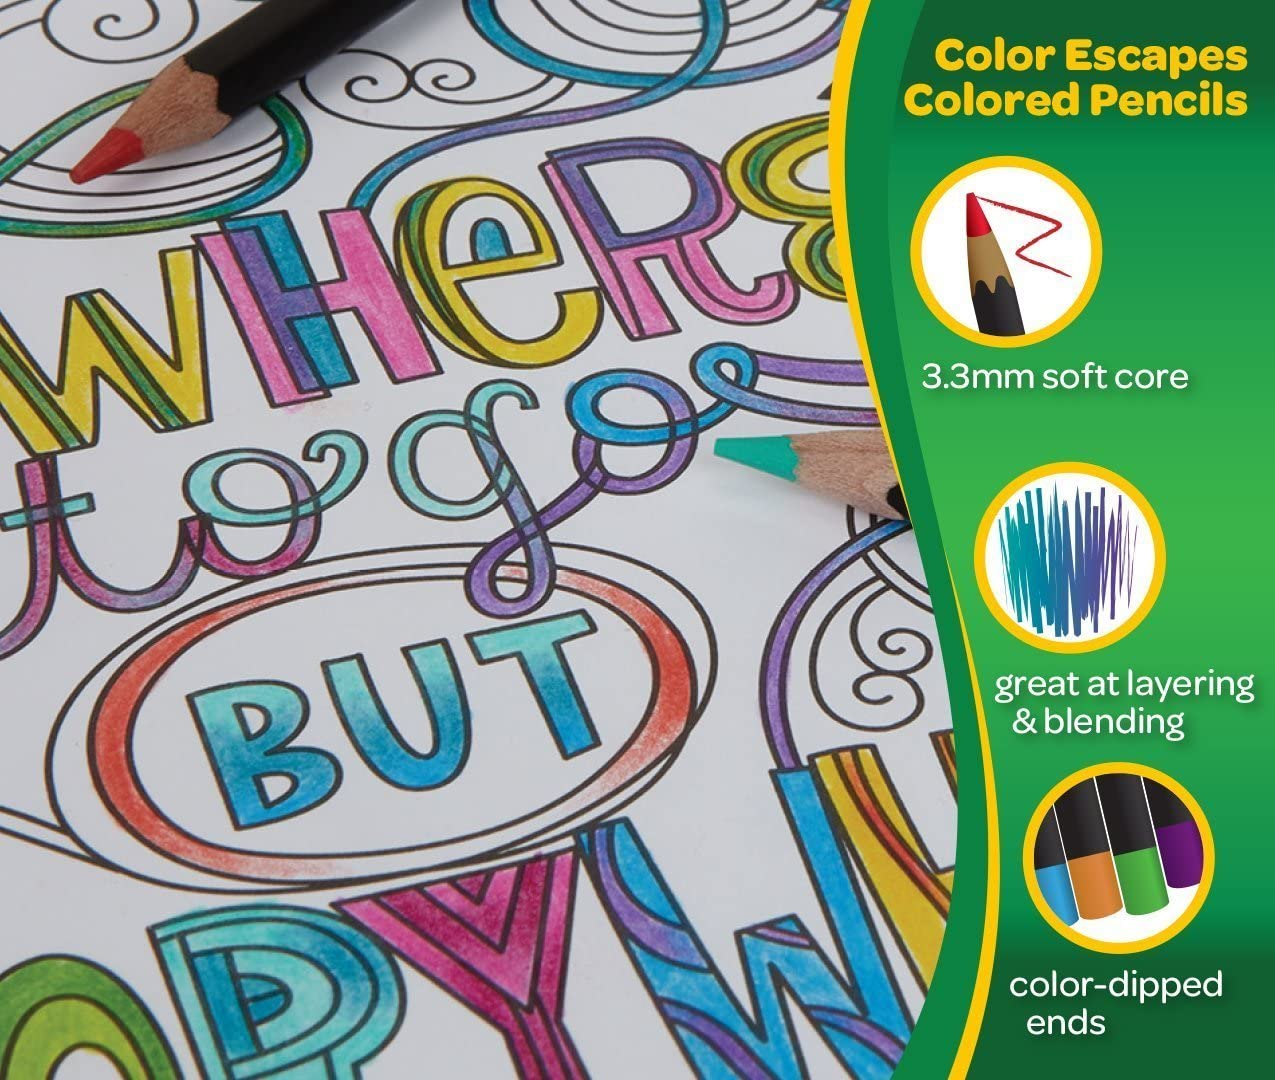 Gift Adult Coloring 72 Count Crayola Color Escapes Colored Pencils